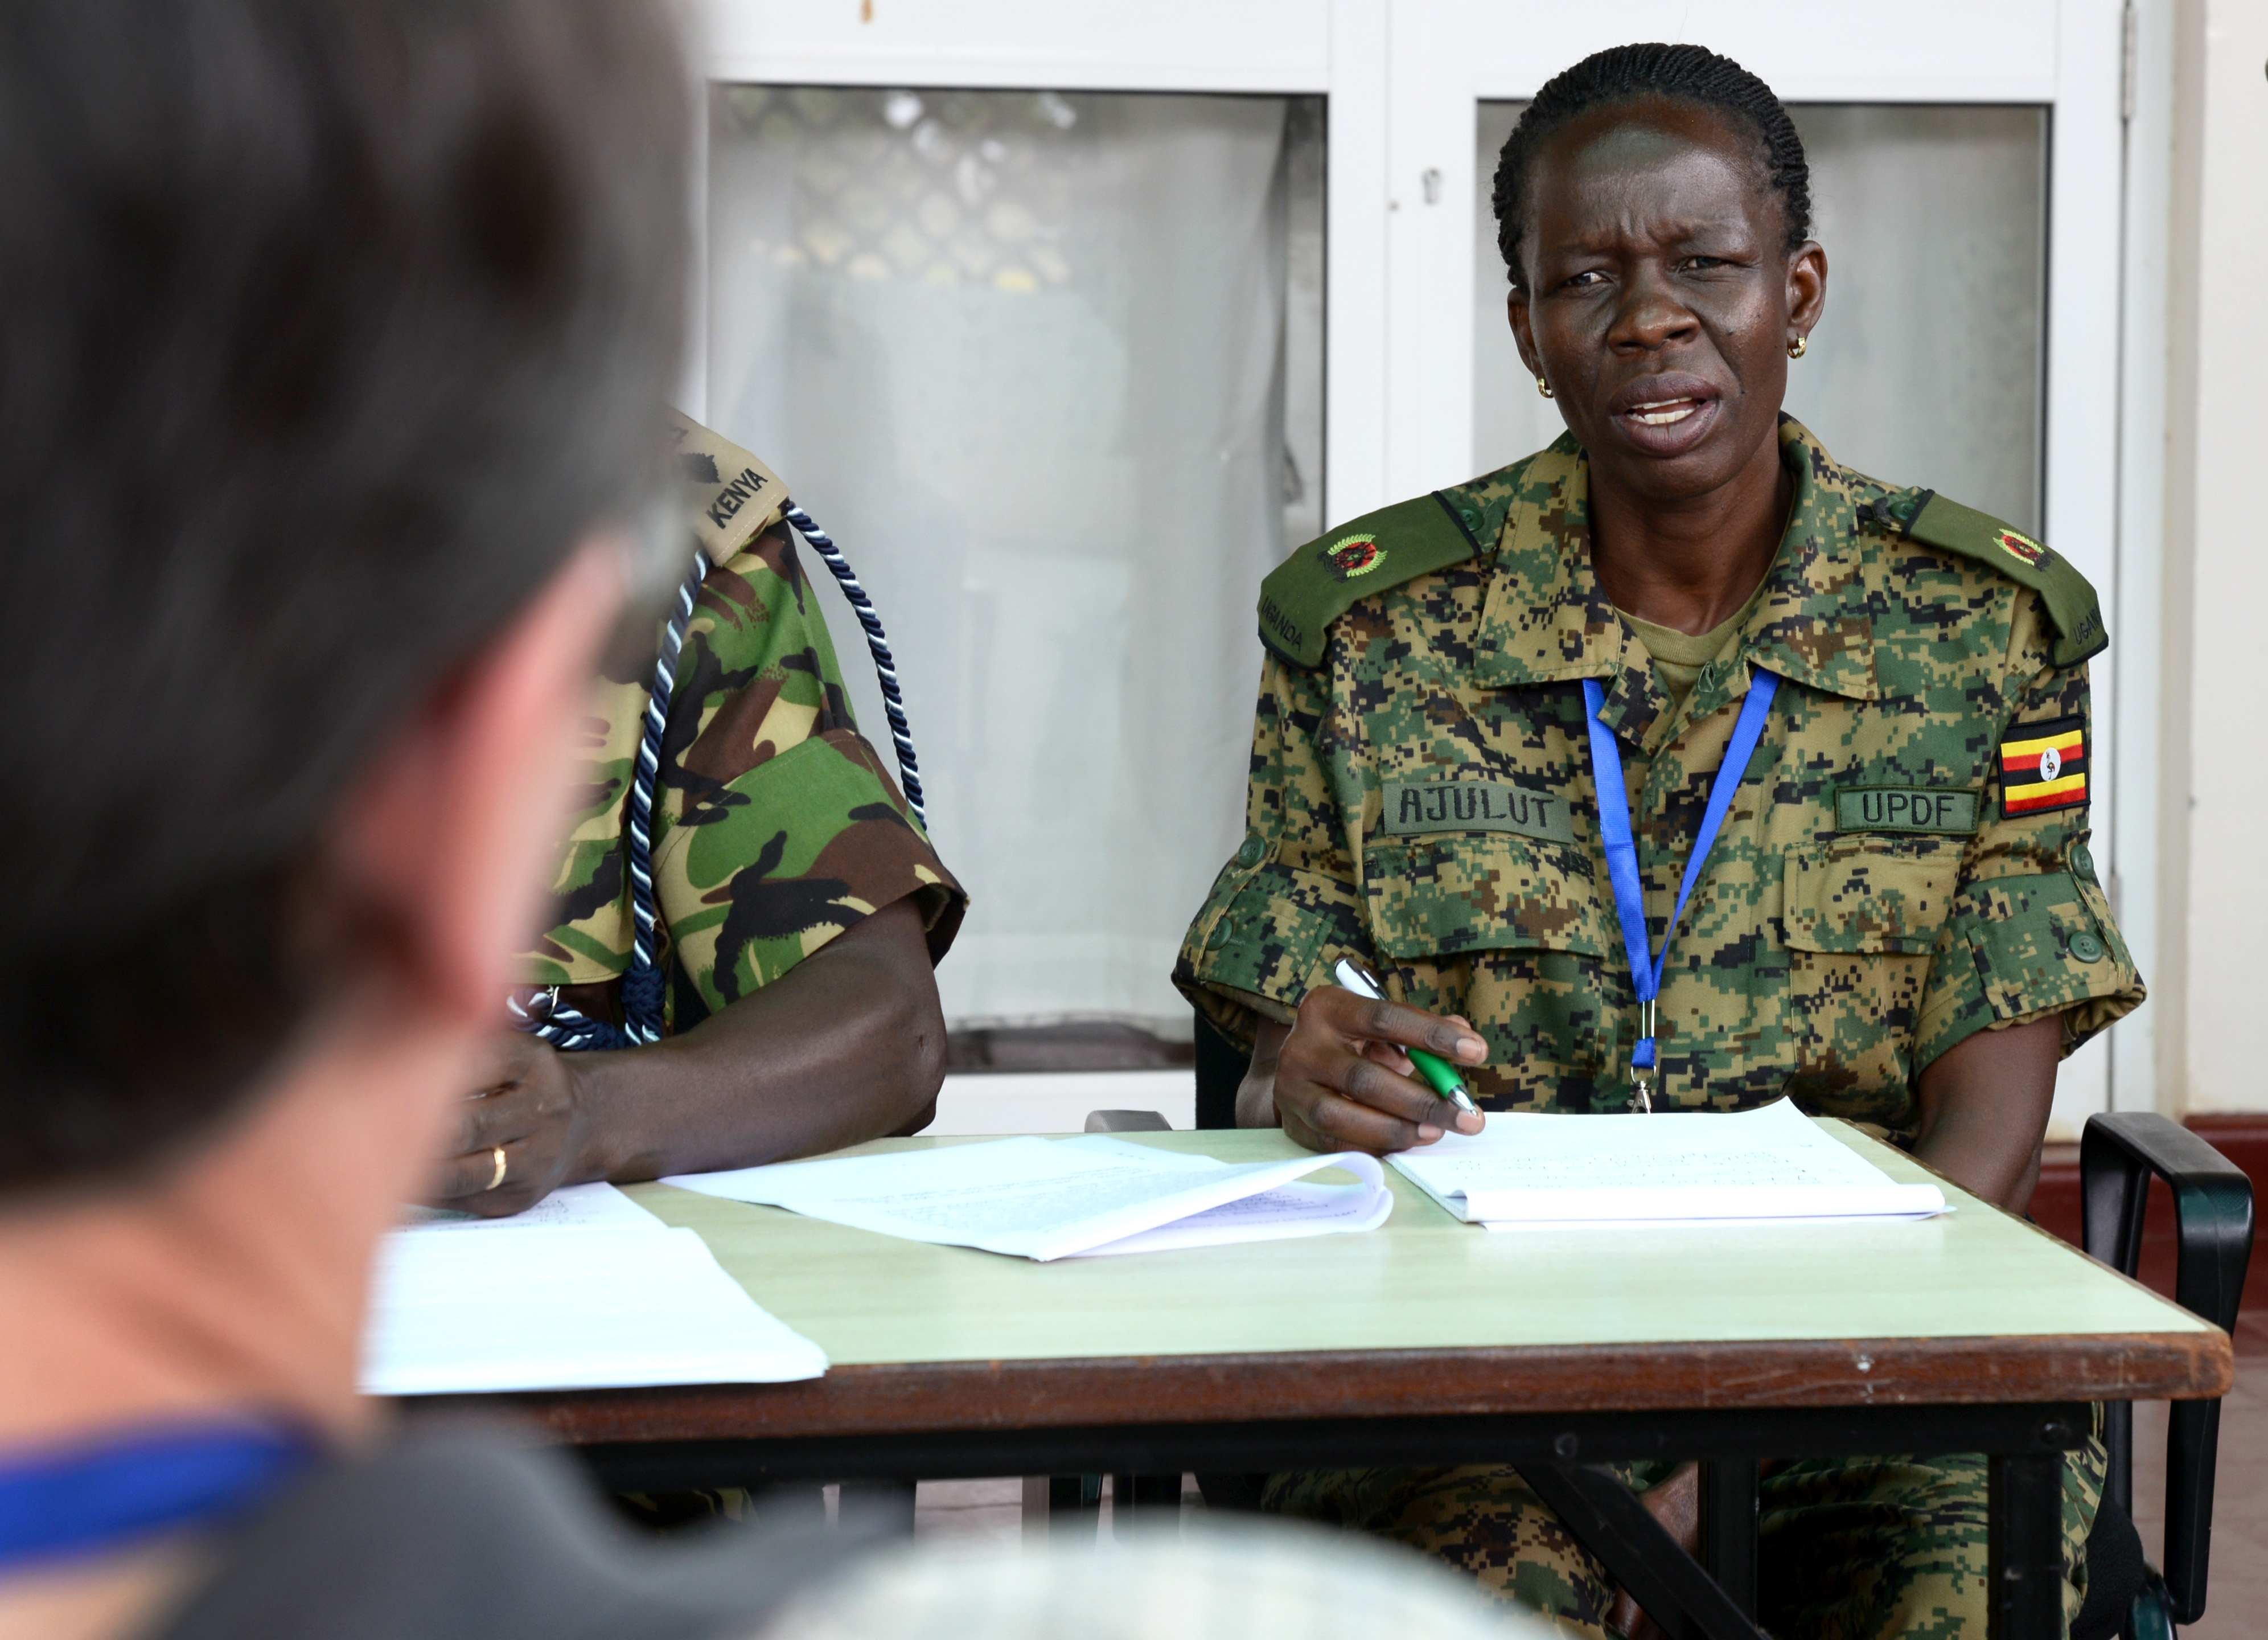 An officer from the Uganda People's Defence Force speaks to a media role player at a simulated press conference March 3, 2016, during an exercise to complete an AMISOM staff officers course in Nairobi, Kenya. The press conference tested the different directorate officers' ability to answer questions accurately, confidently and without revealing sensitive military information. (U.S. Air Force photo by Staff Sgt. Kate Thornton)